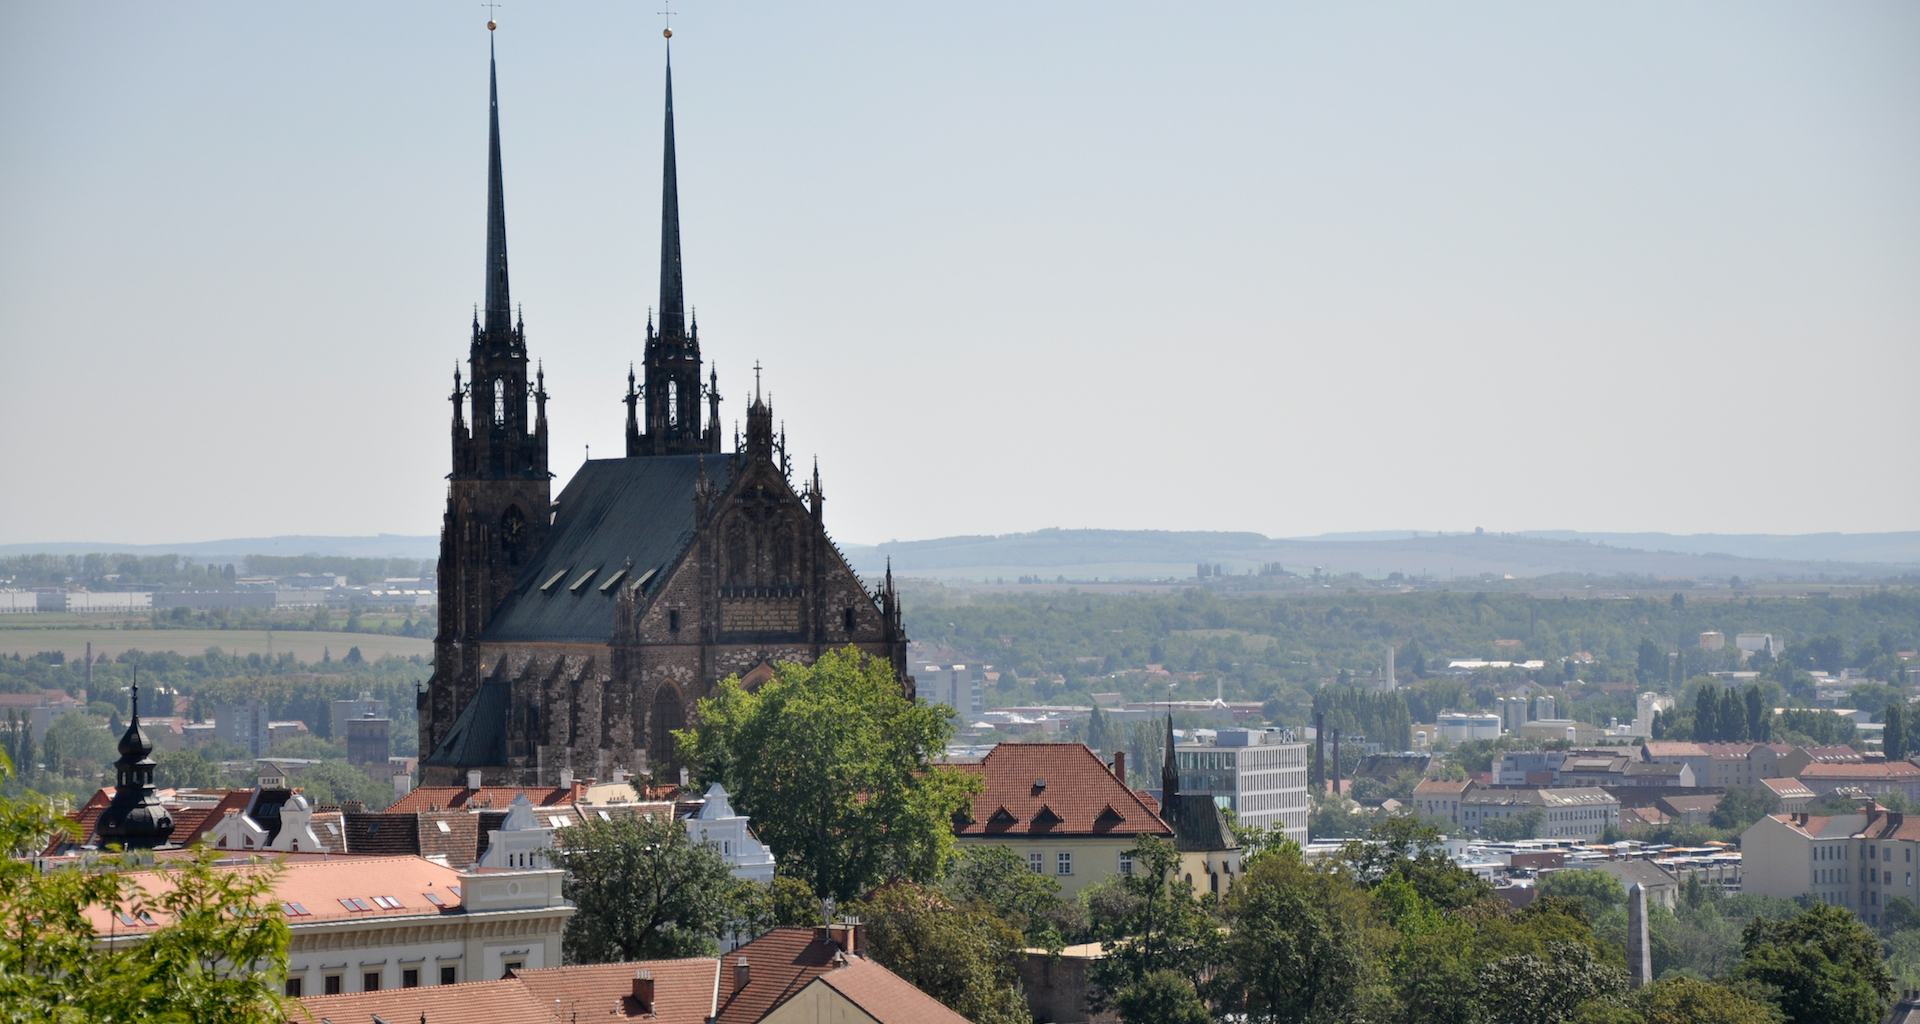 5 minute guide to Brno: modern landmarks and subterranean secrets in the Czech Republic's second city